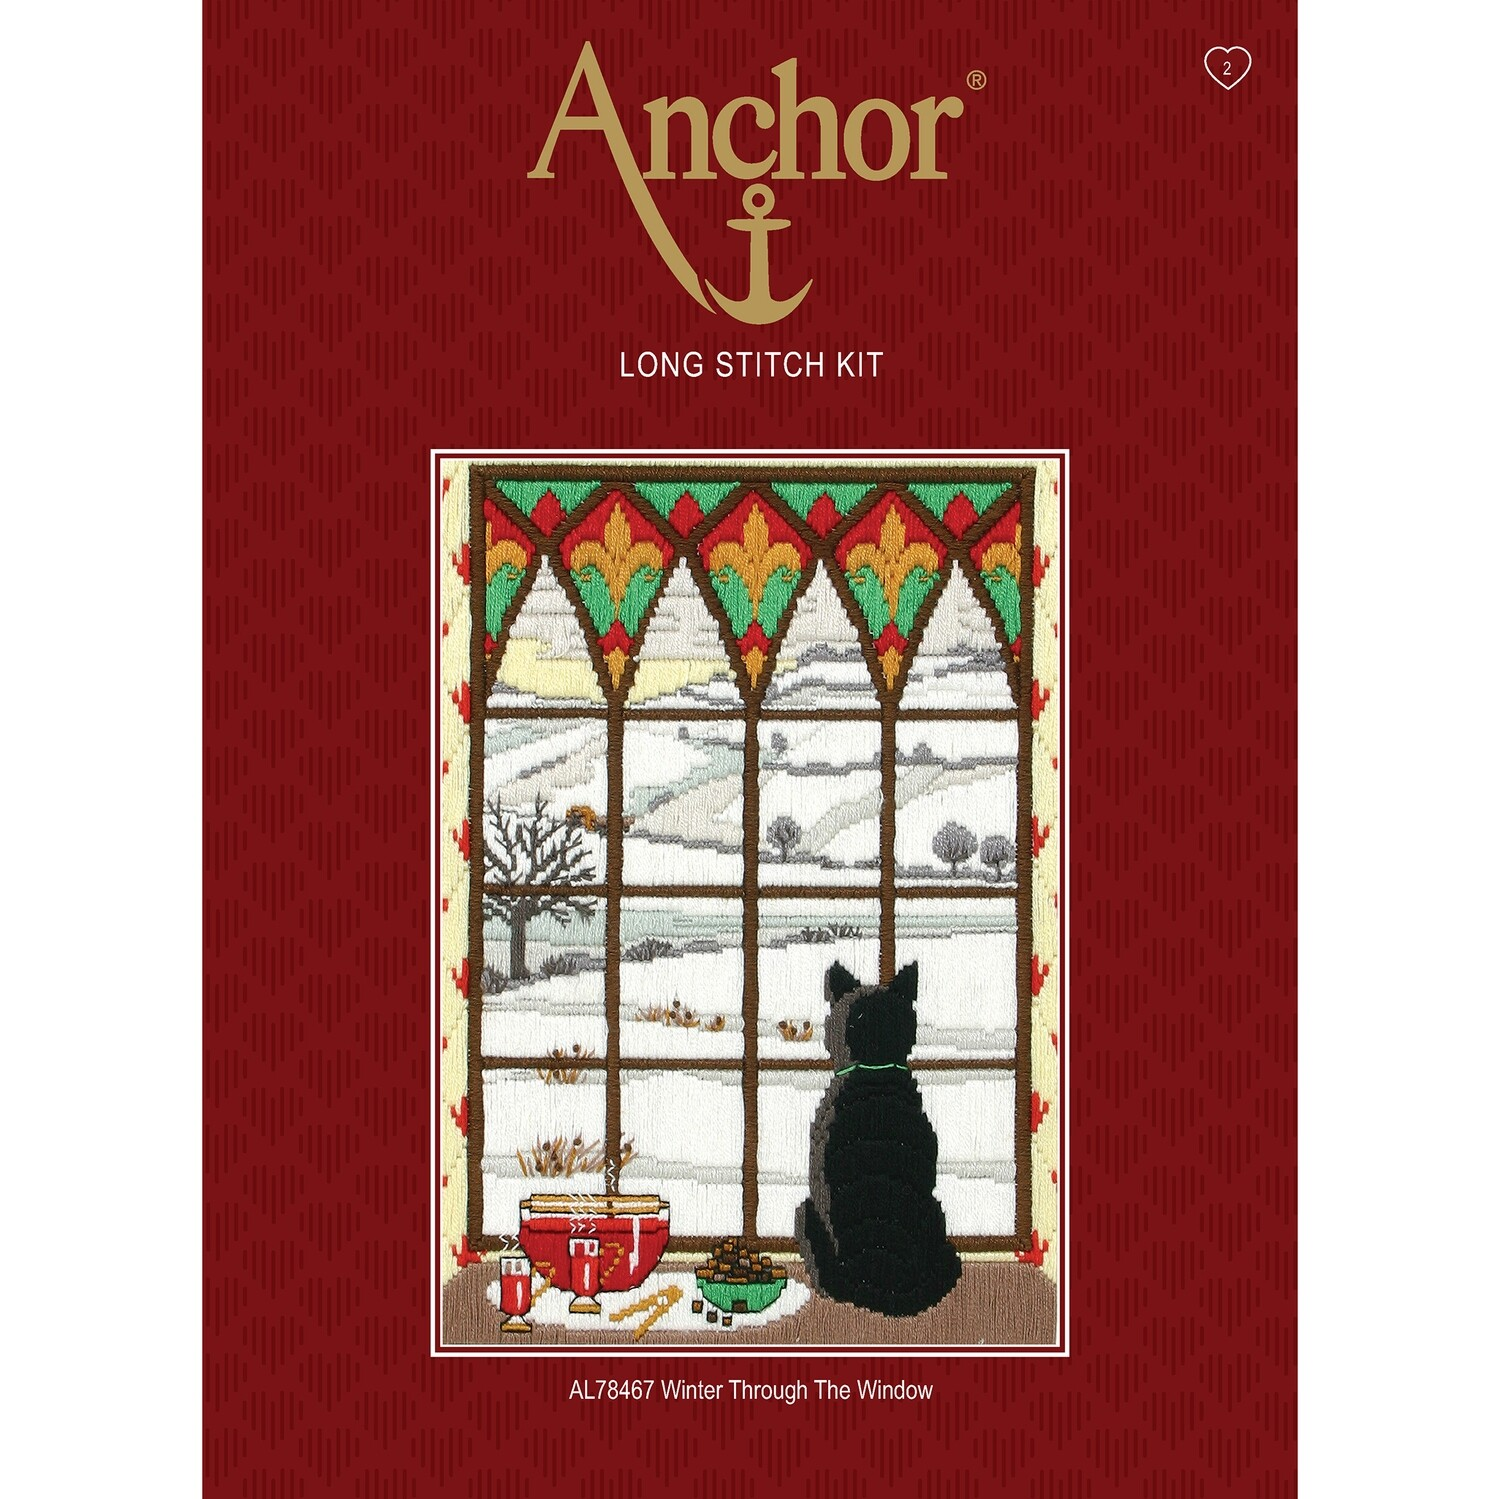 Anchor Starter Long Stitch Kit - Winter through the Window